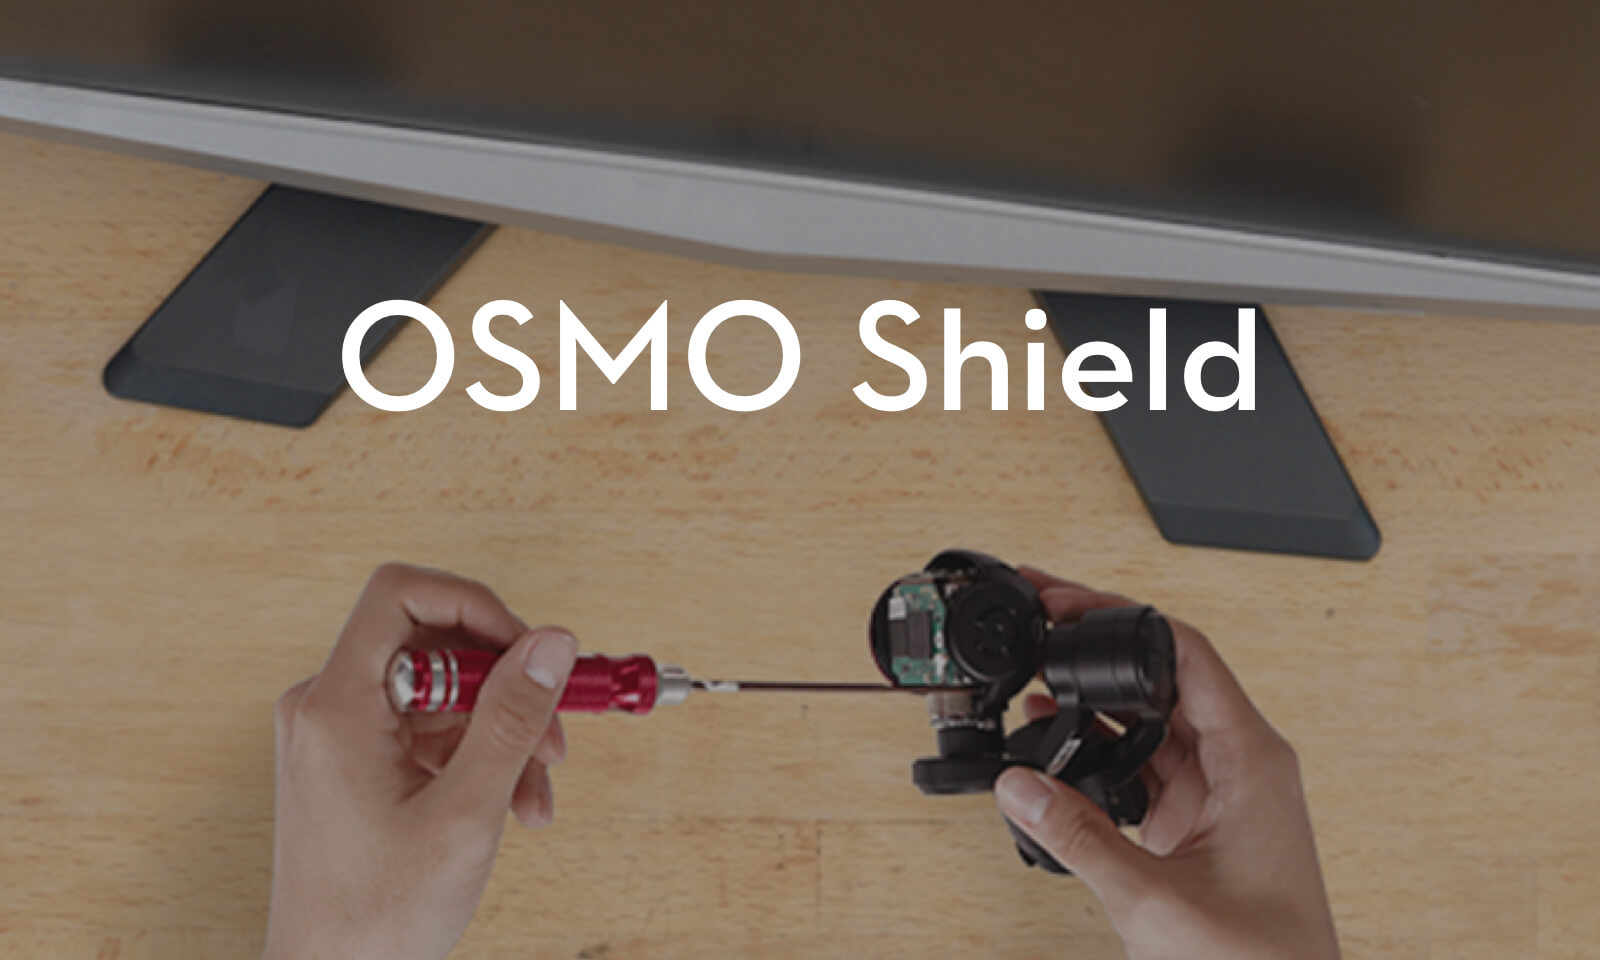 osmo-shield-care-1.jpg